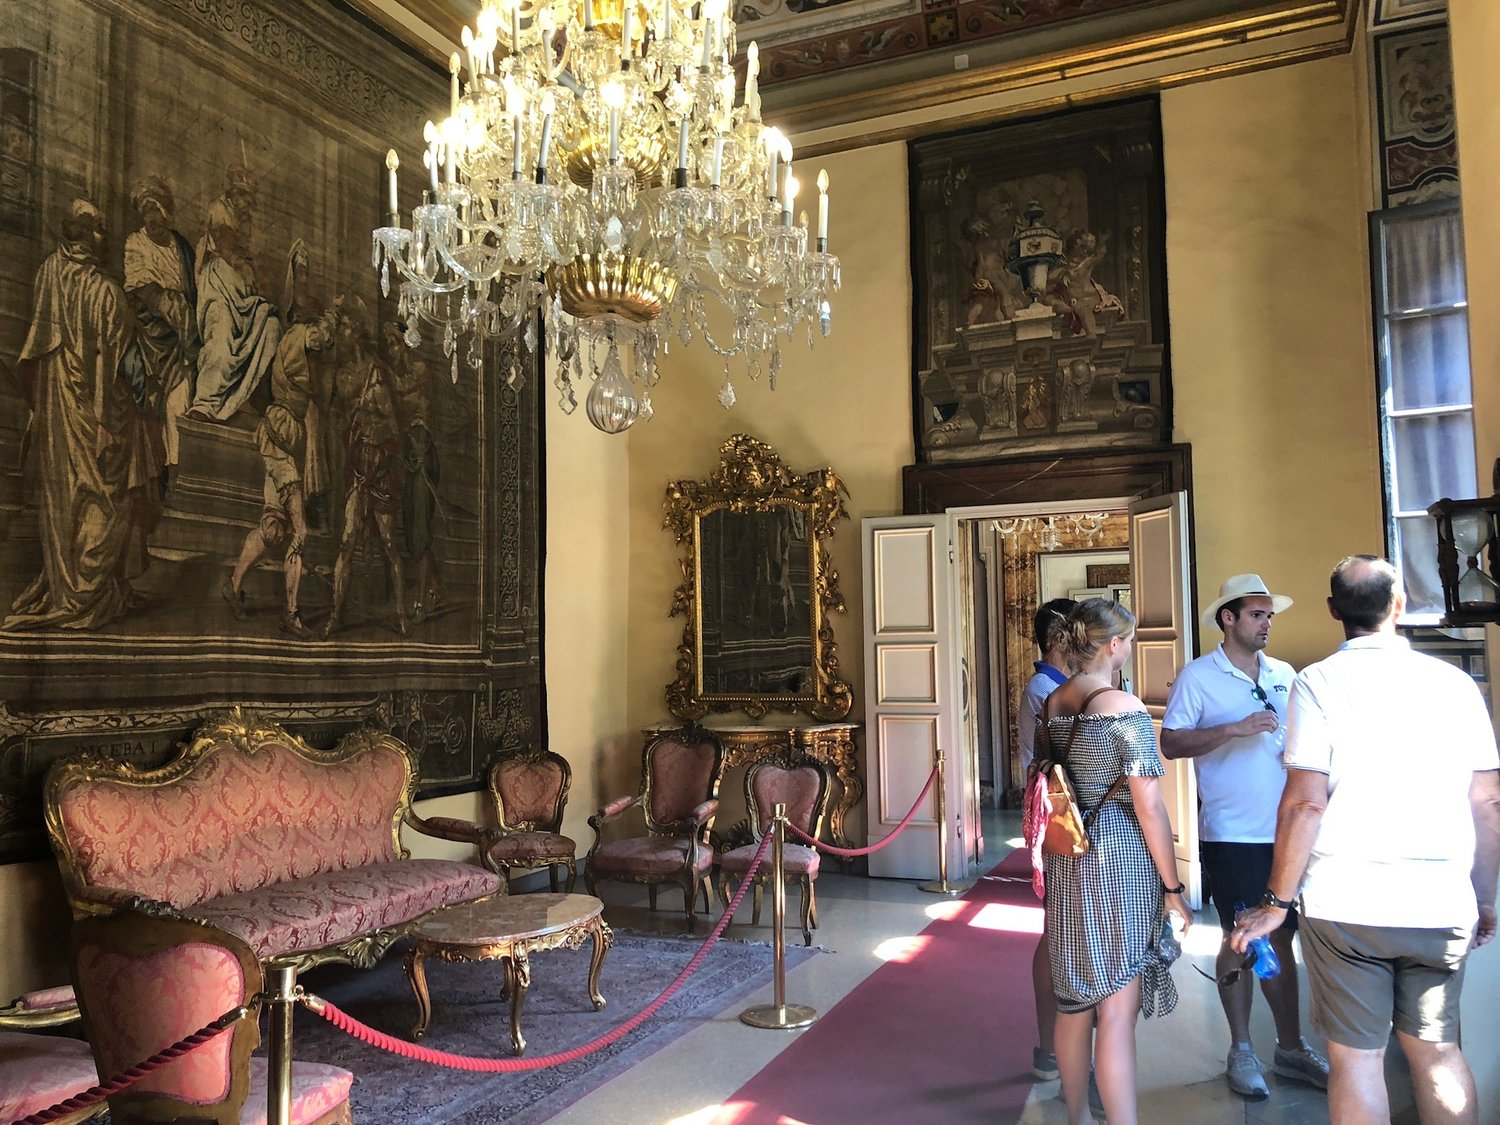 Inside the Medici Family home, later sold to the Riccardis, who renovated it extensively.